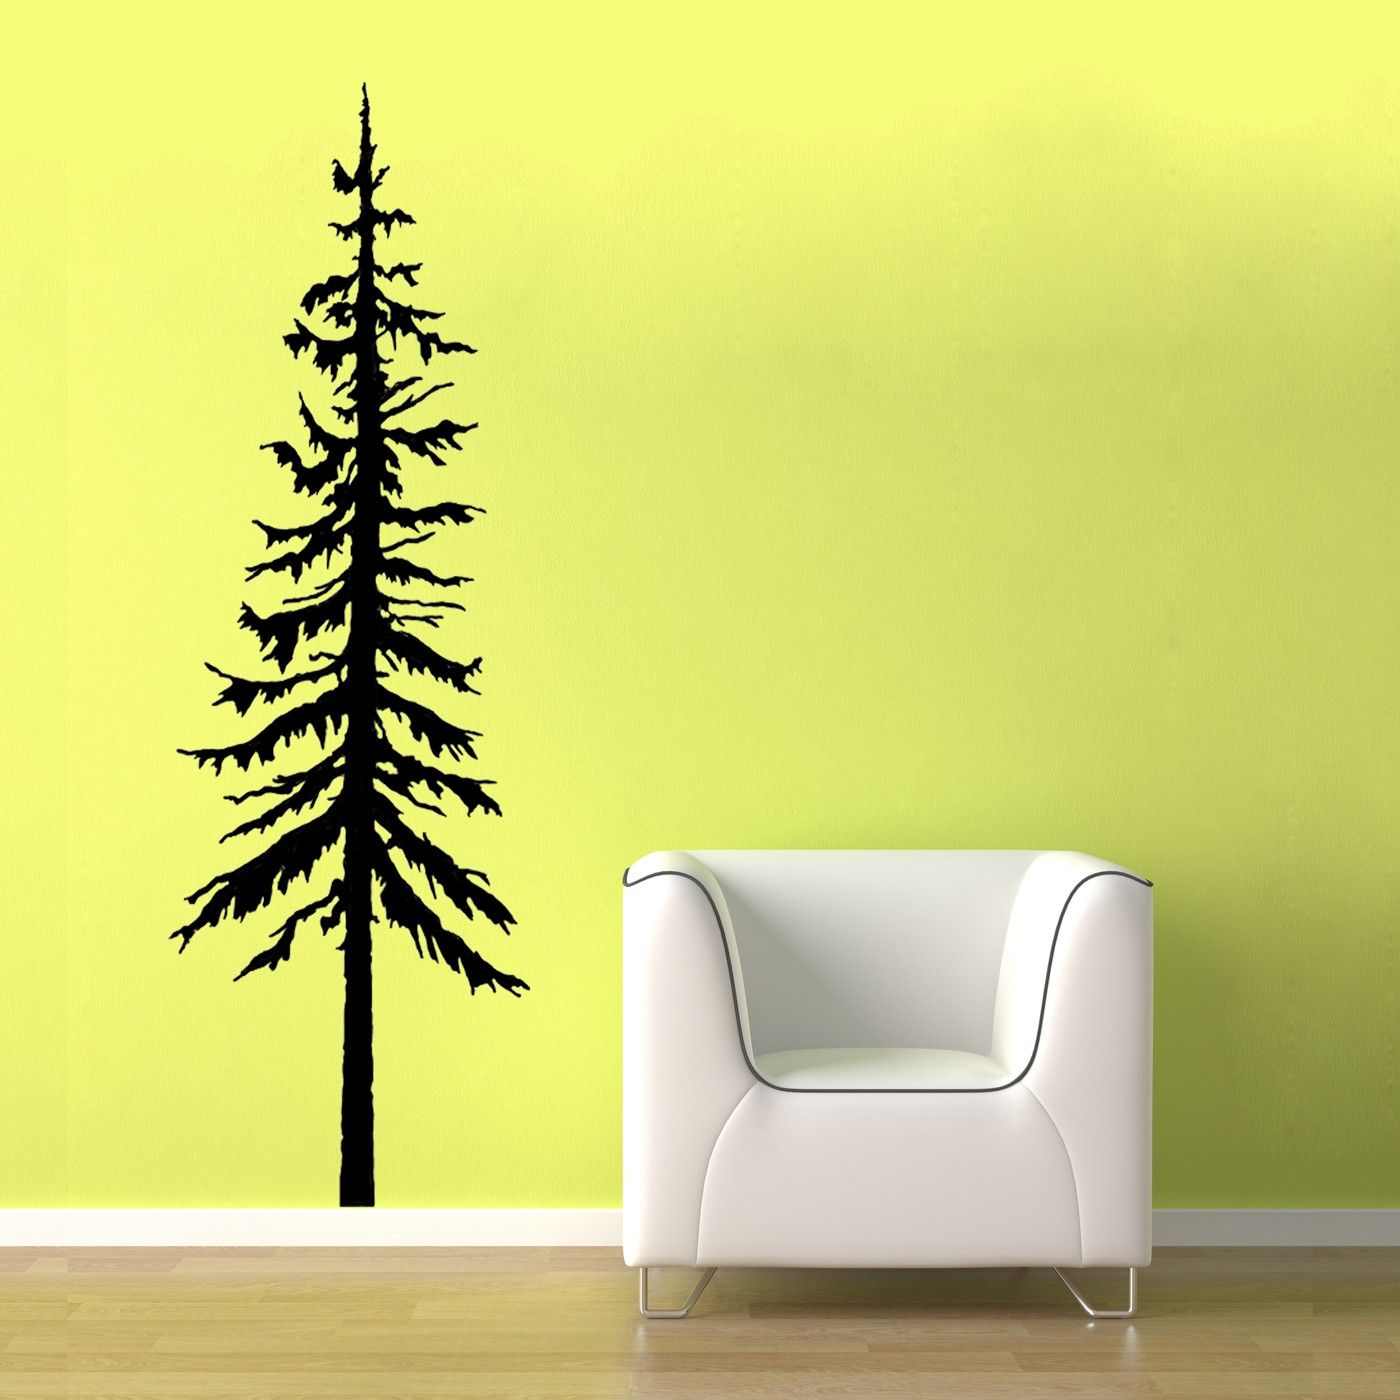 Tree wall decals large personalized family tree decal vinyl wall decal - Giant Family Tree Wall Sticker Vinyl Art Pine Tree Decal Vinyl Wall Graphic Pine Tree